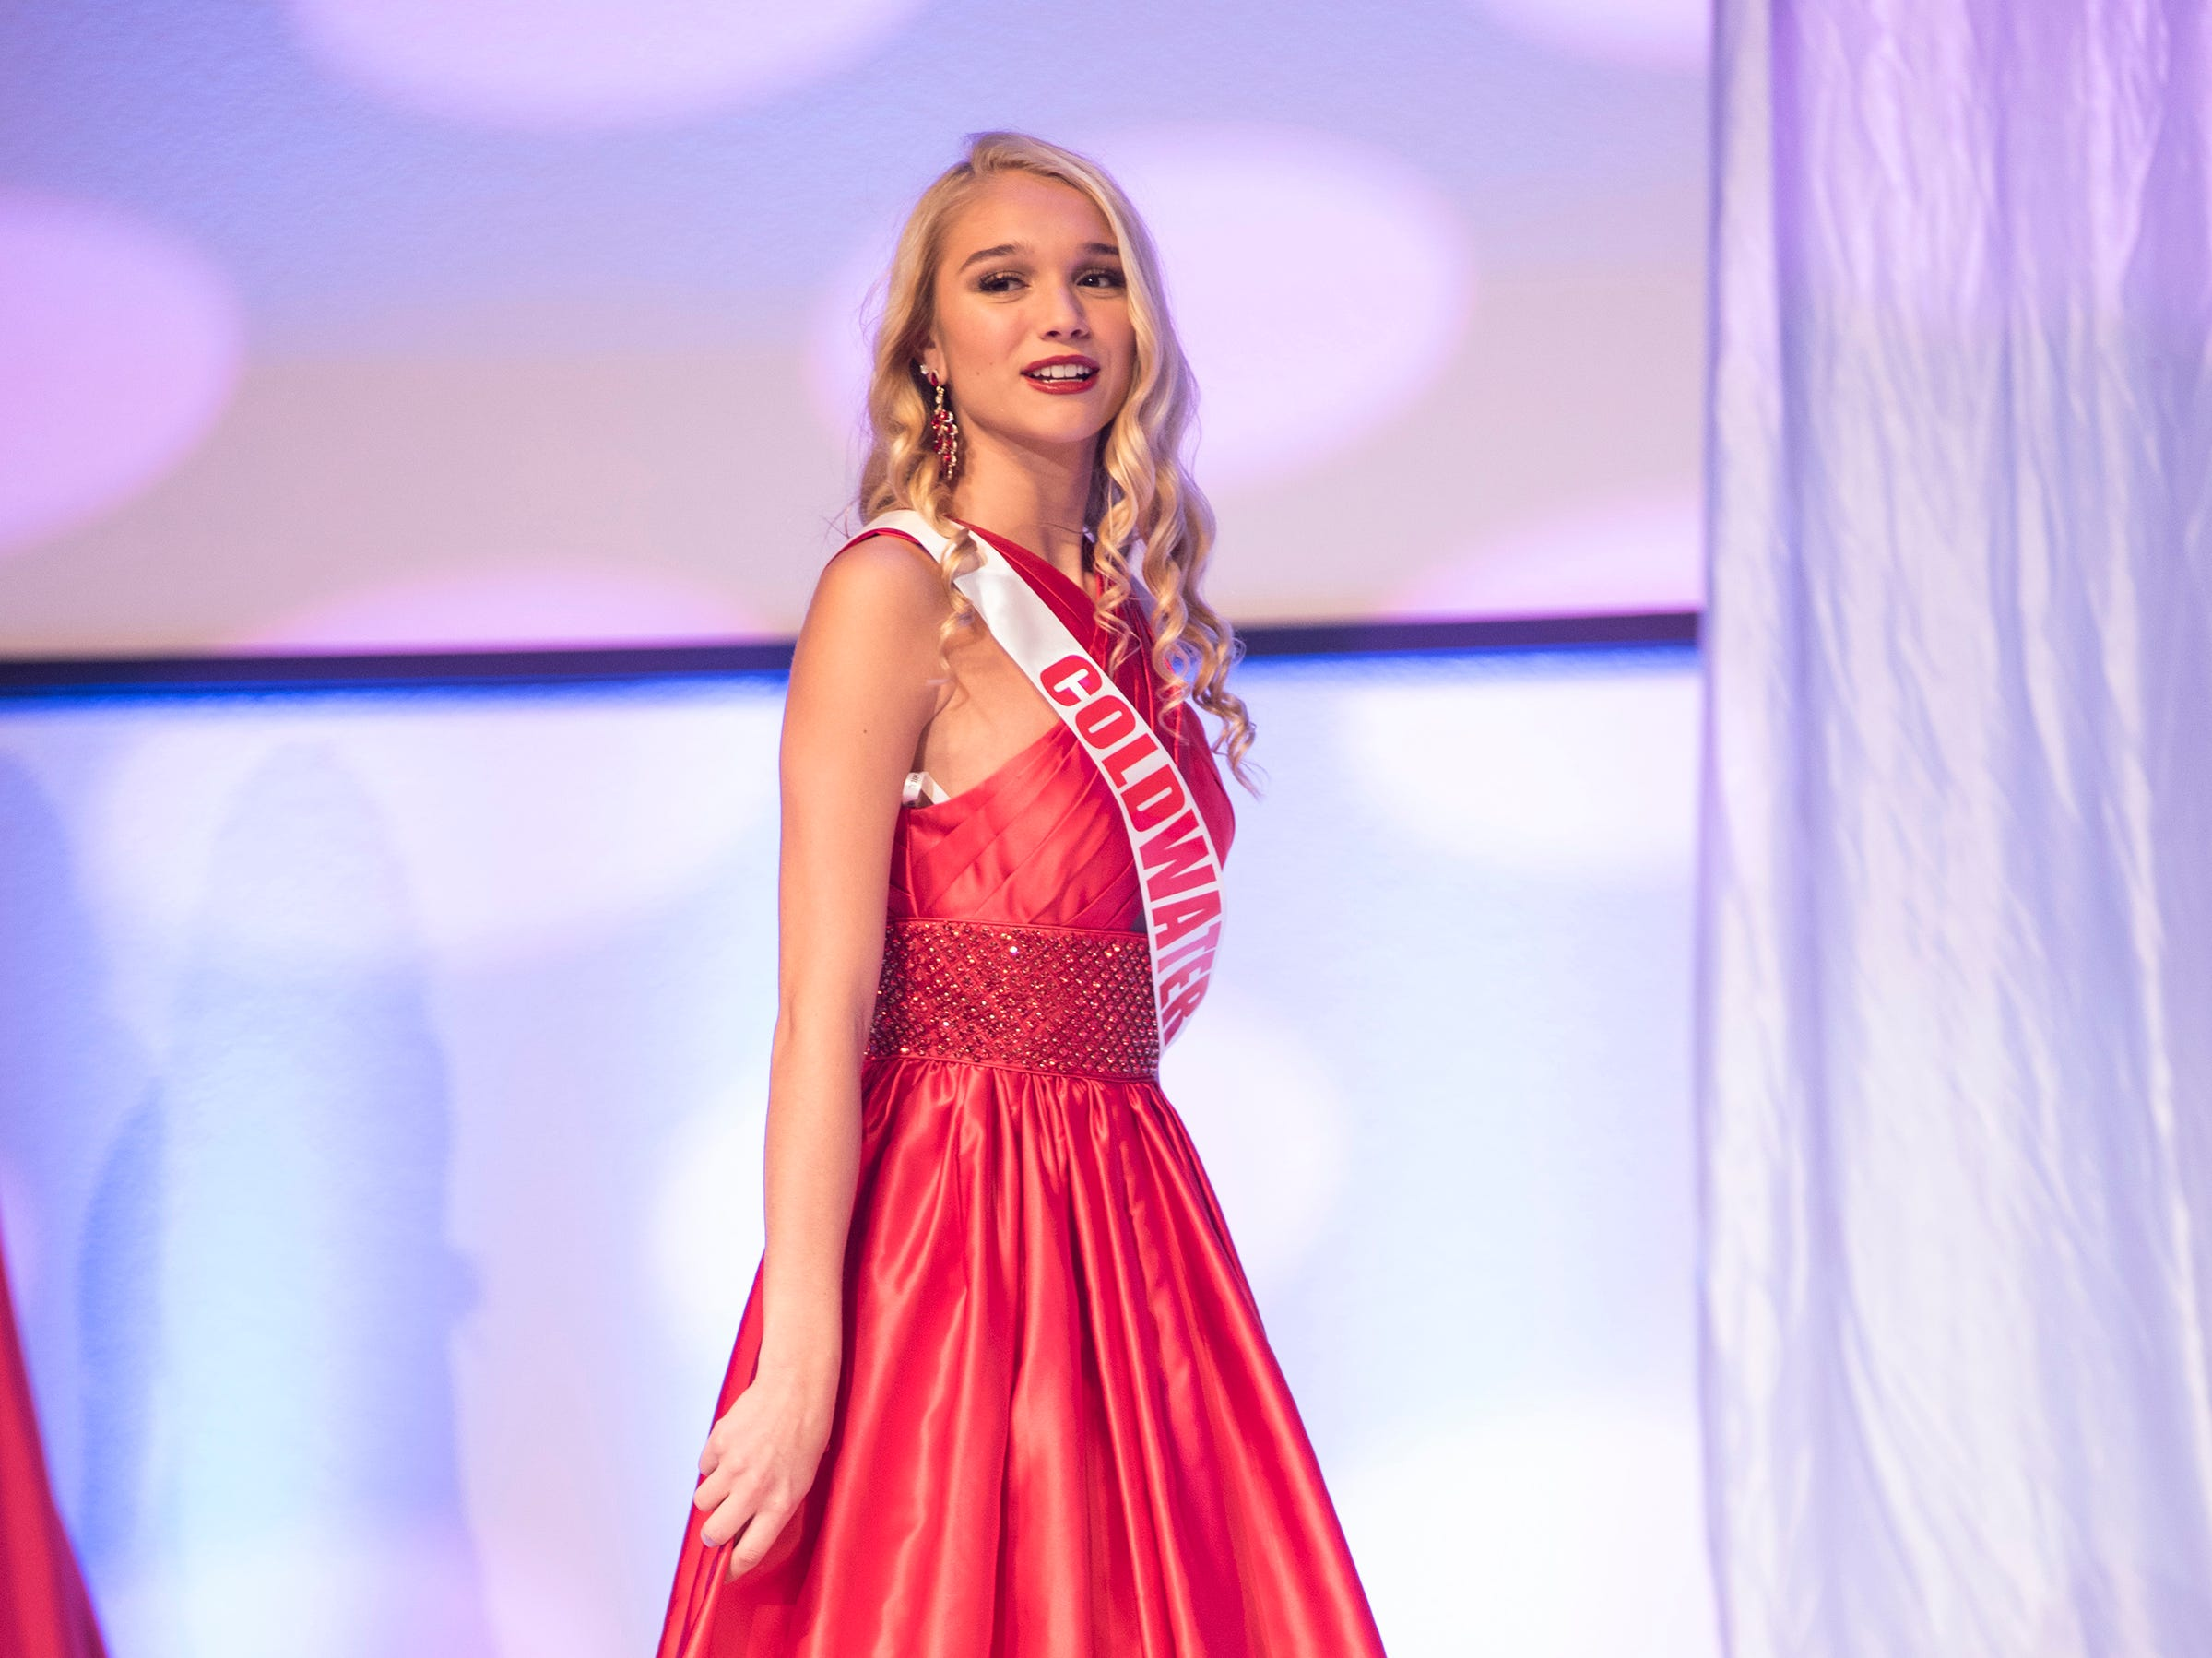 Miss Coldwater Teen Erica Rodgers competes in formal wear during the semifinal round of Miss Michigan Teen USA Saturday, Sept. 22, 2018 at McMorran Theater.